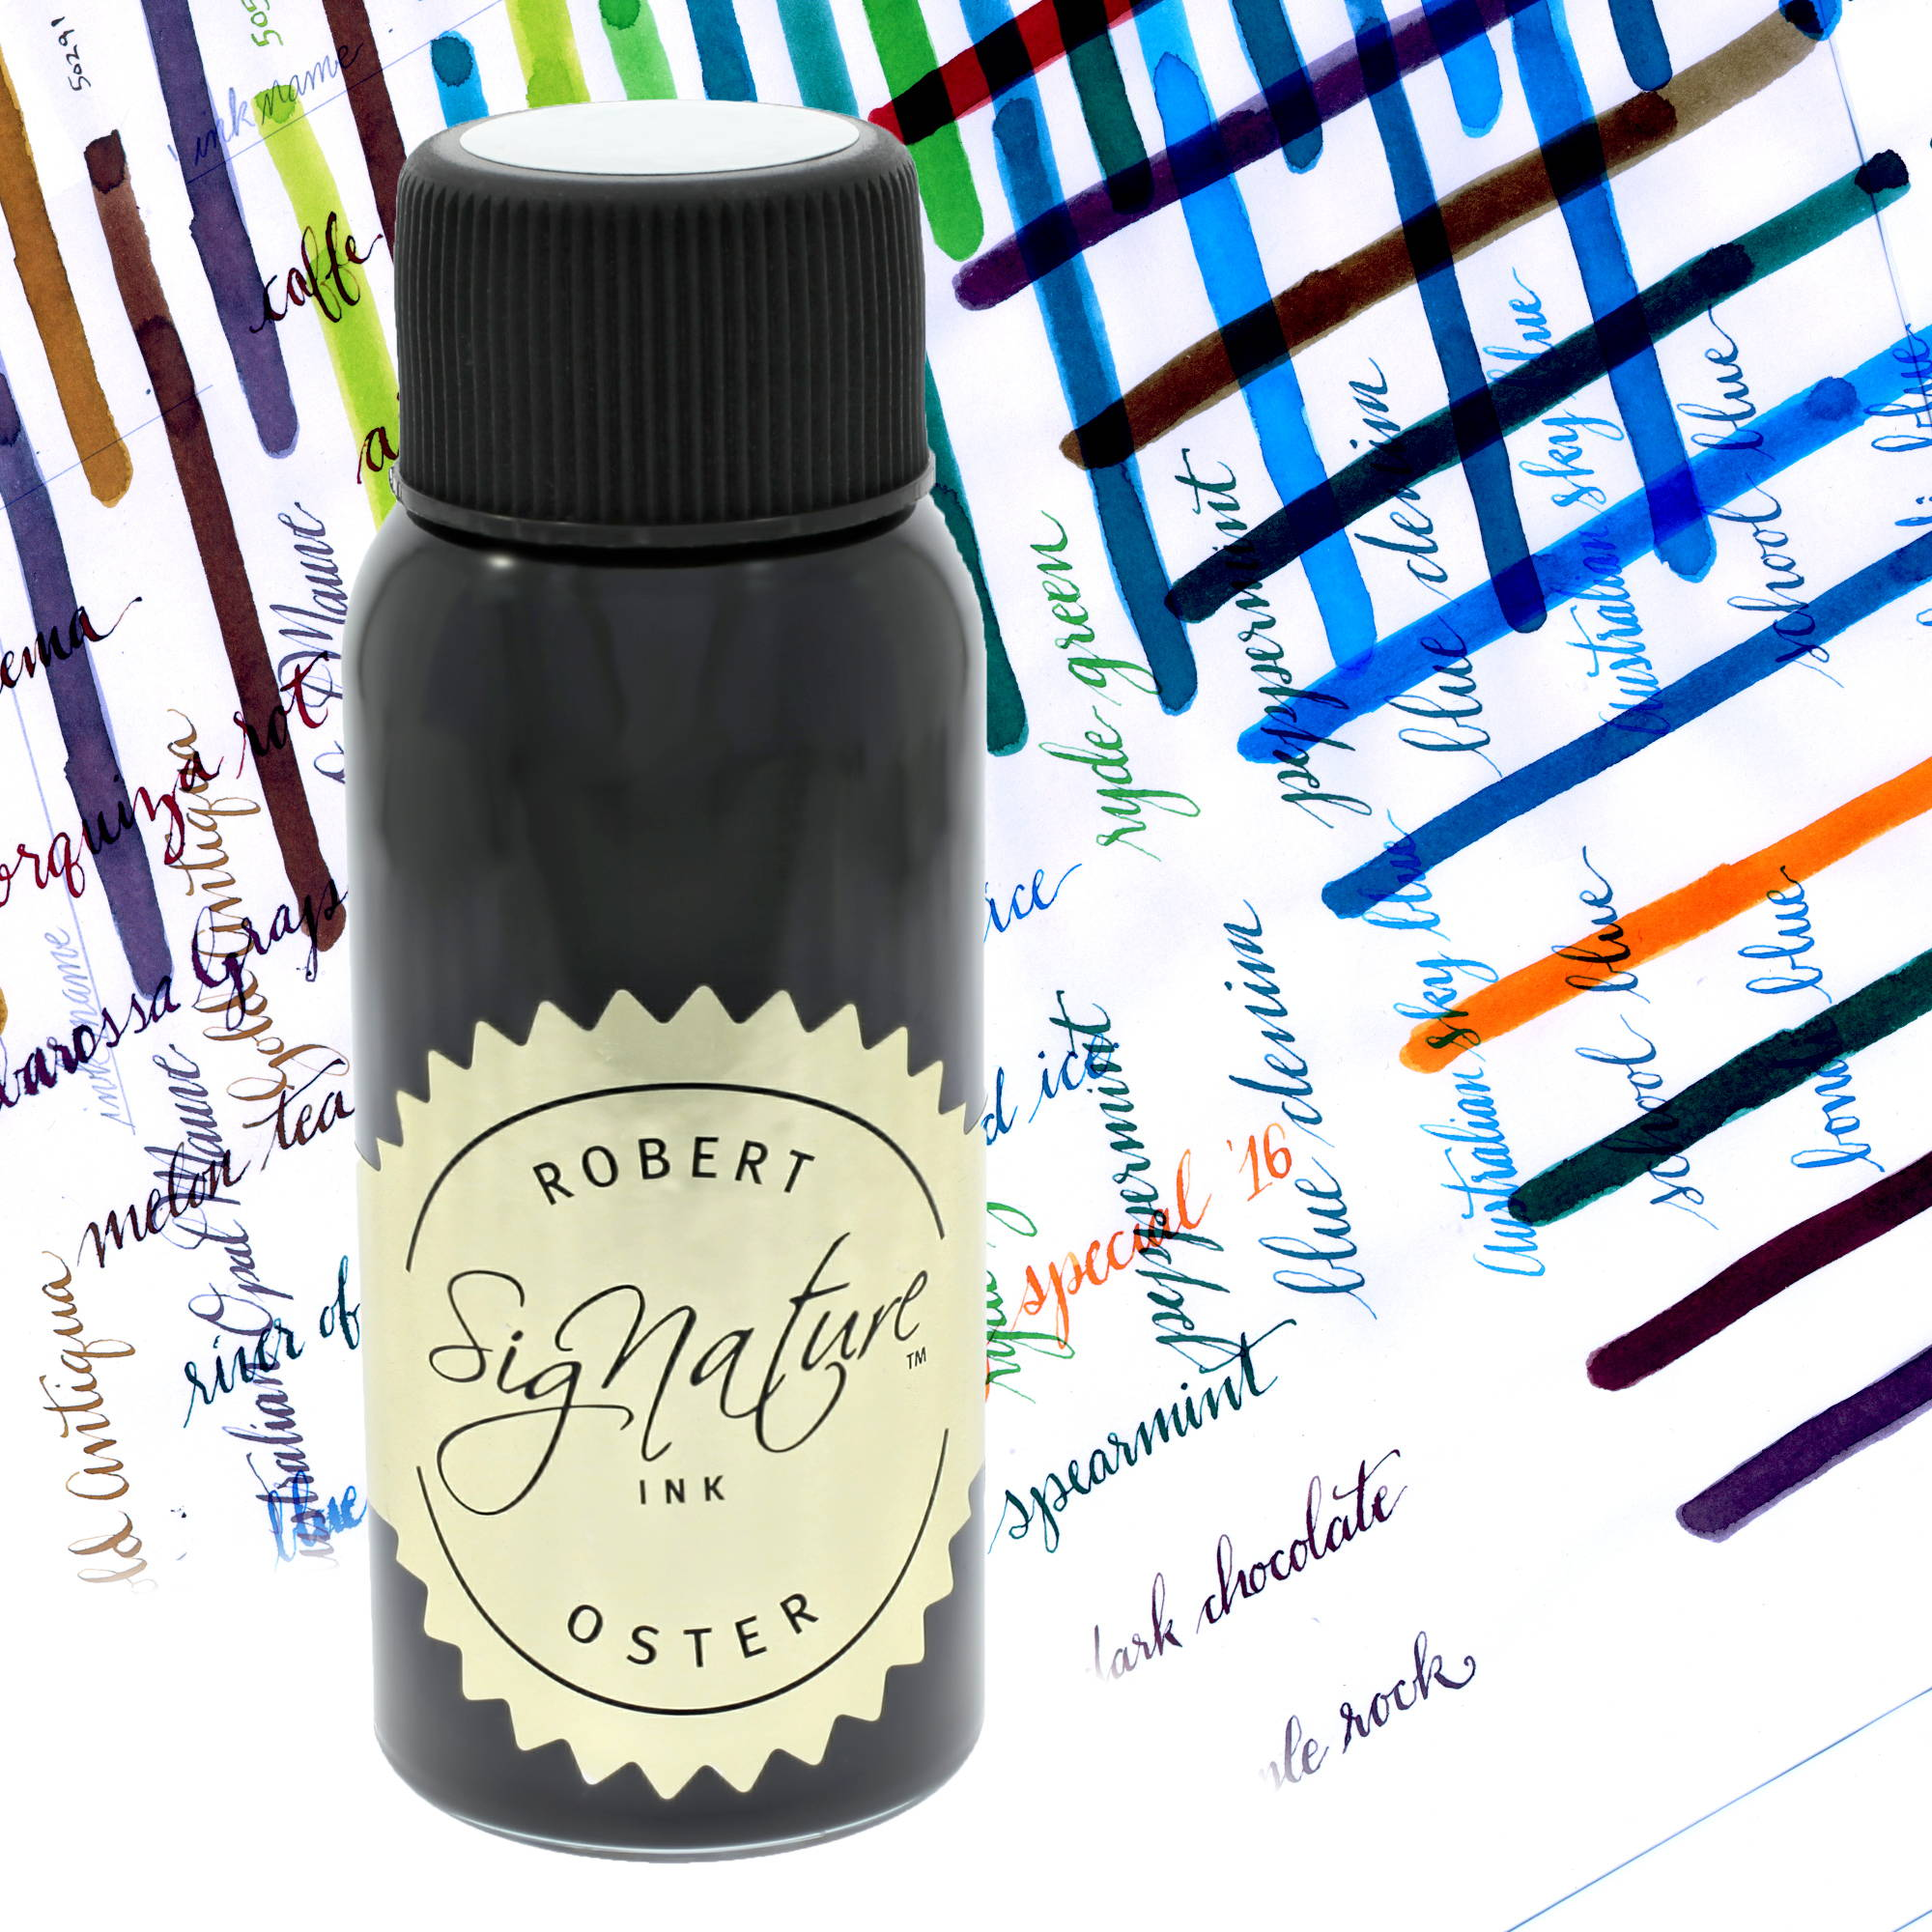 Robert Oster Signature Fountain Pen Inks